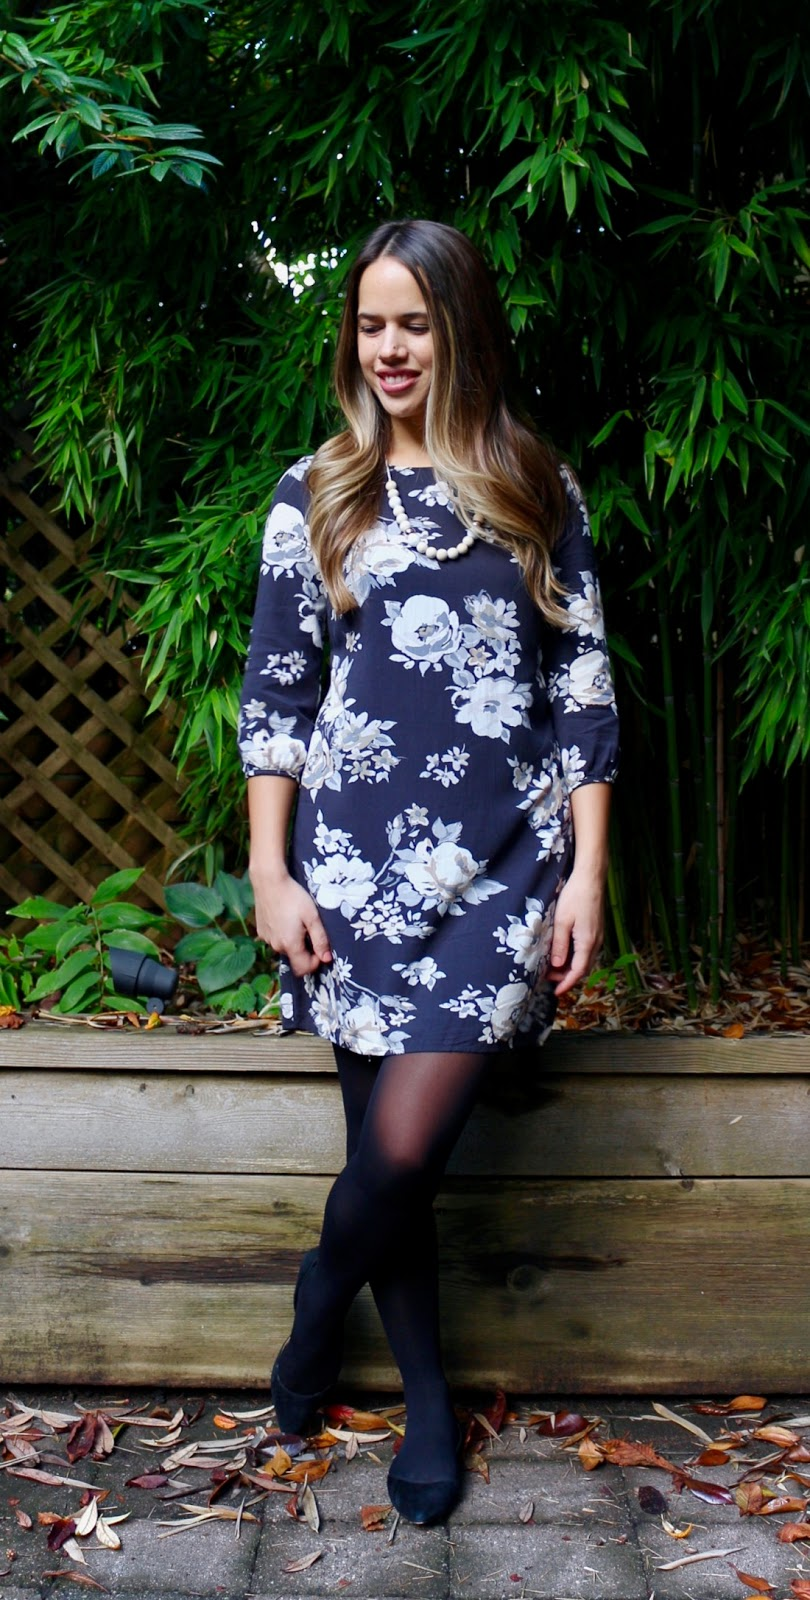 Jules in Flats - Floral Mini Dress (Business Casual Fall Workwear on a Budget)